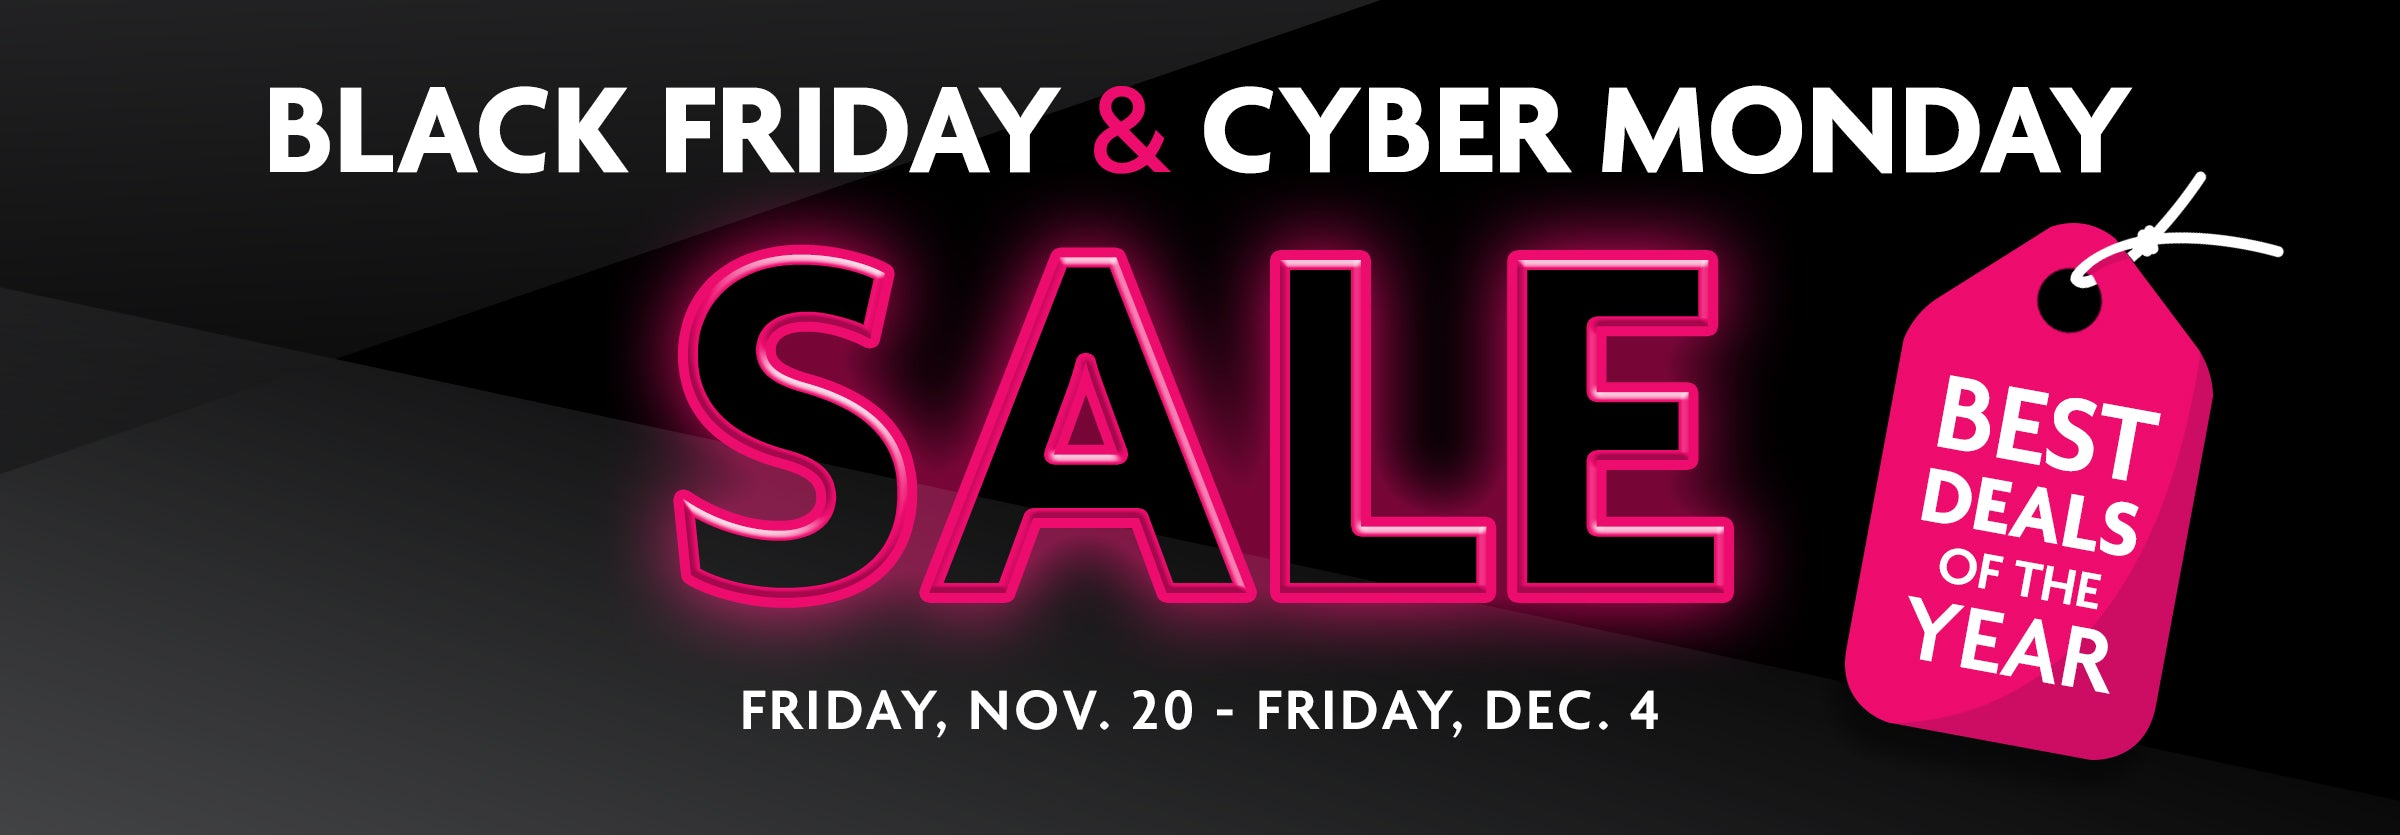 up to 30% off for black friday and cyber monday